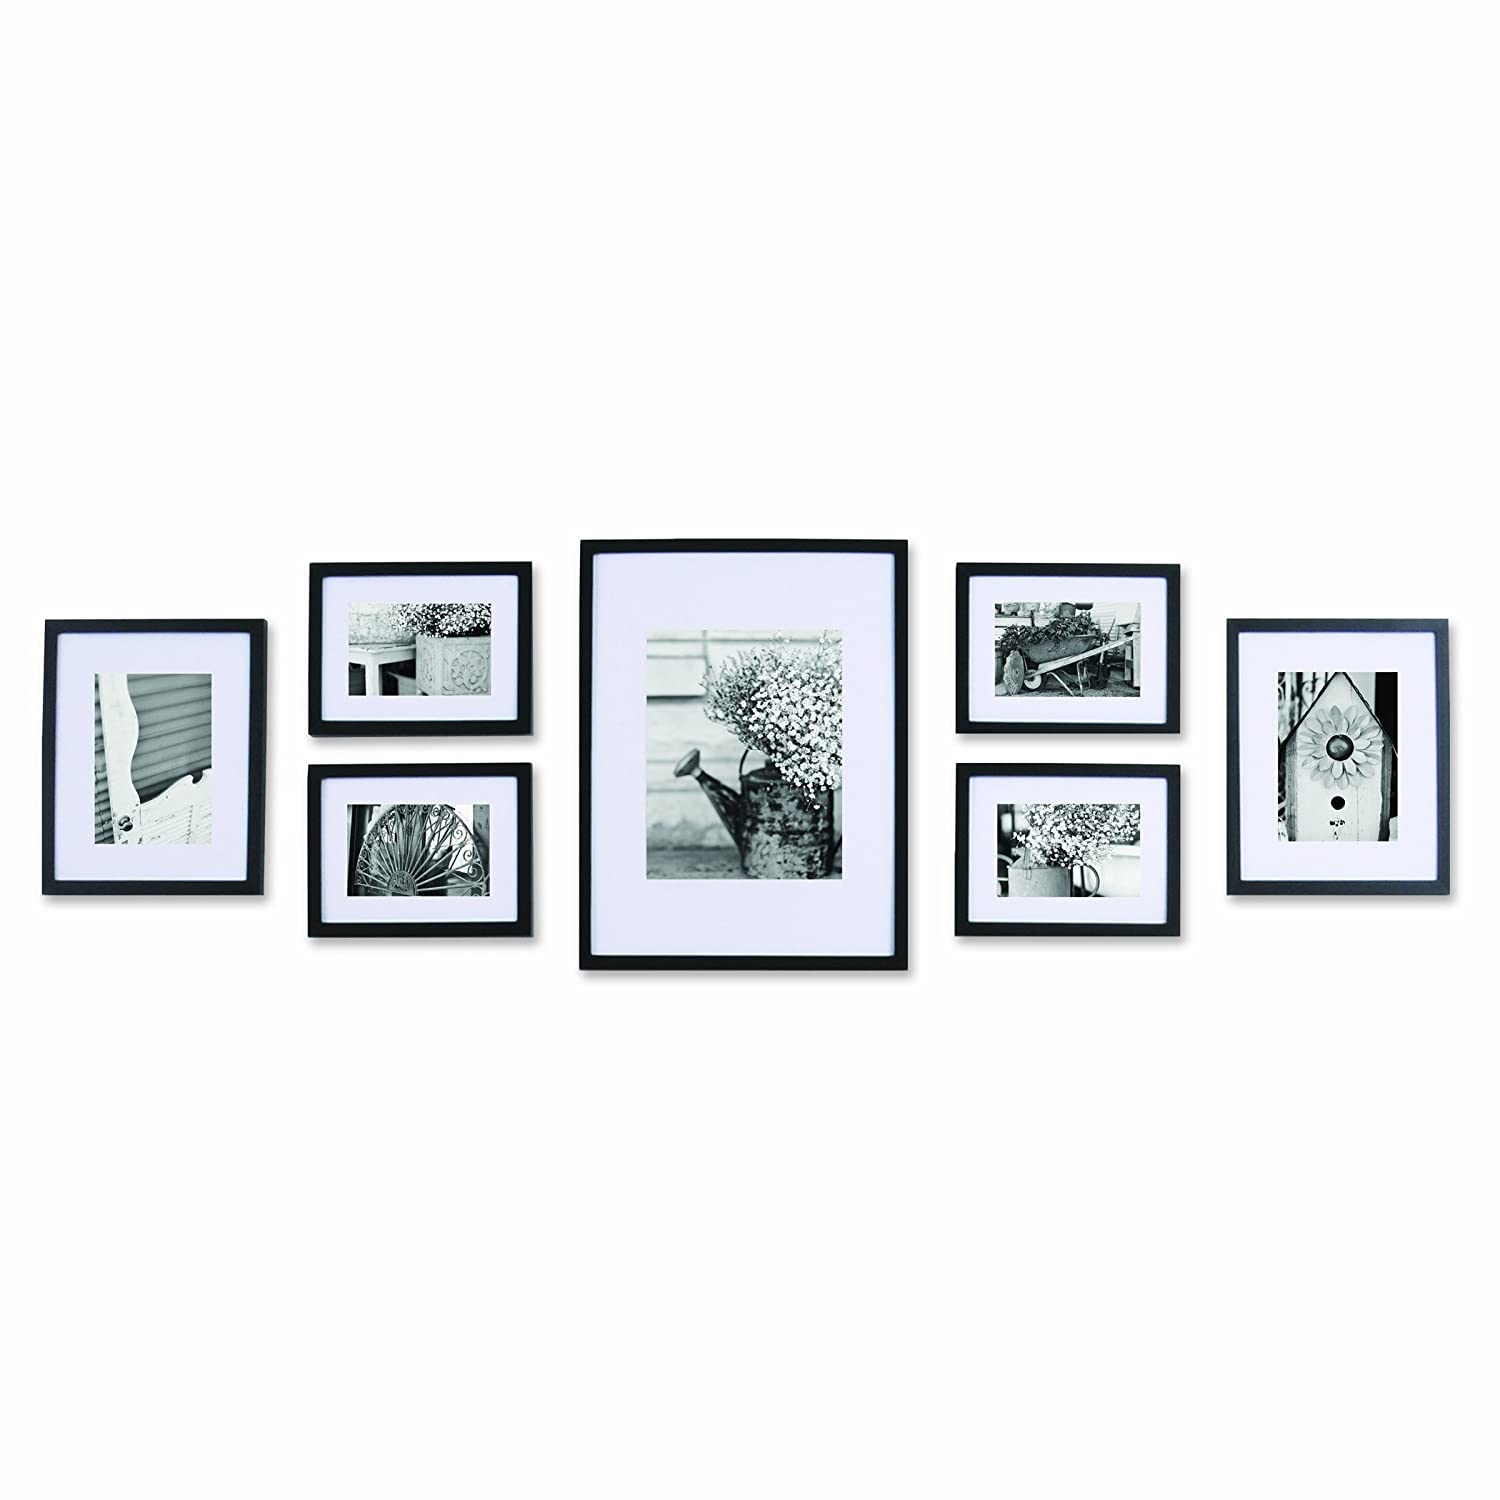 Pinnacle 11FW1443 Black 7-piece Solid Wood Wall Frame Kit – Picture Frame Sets